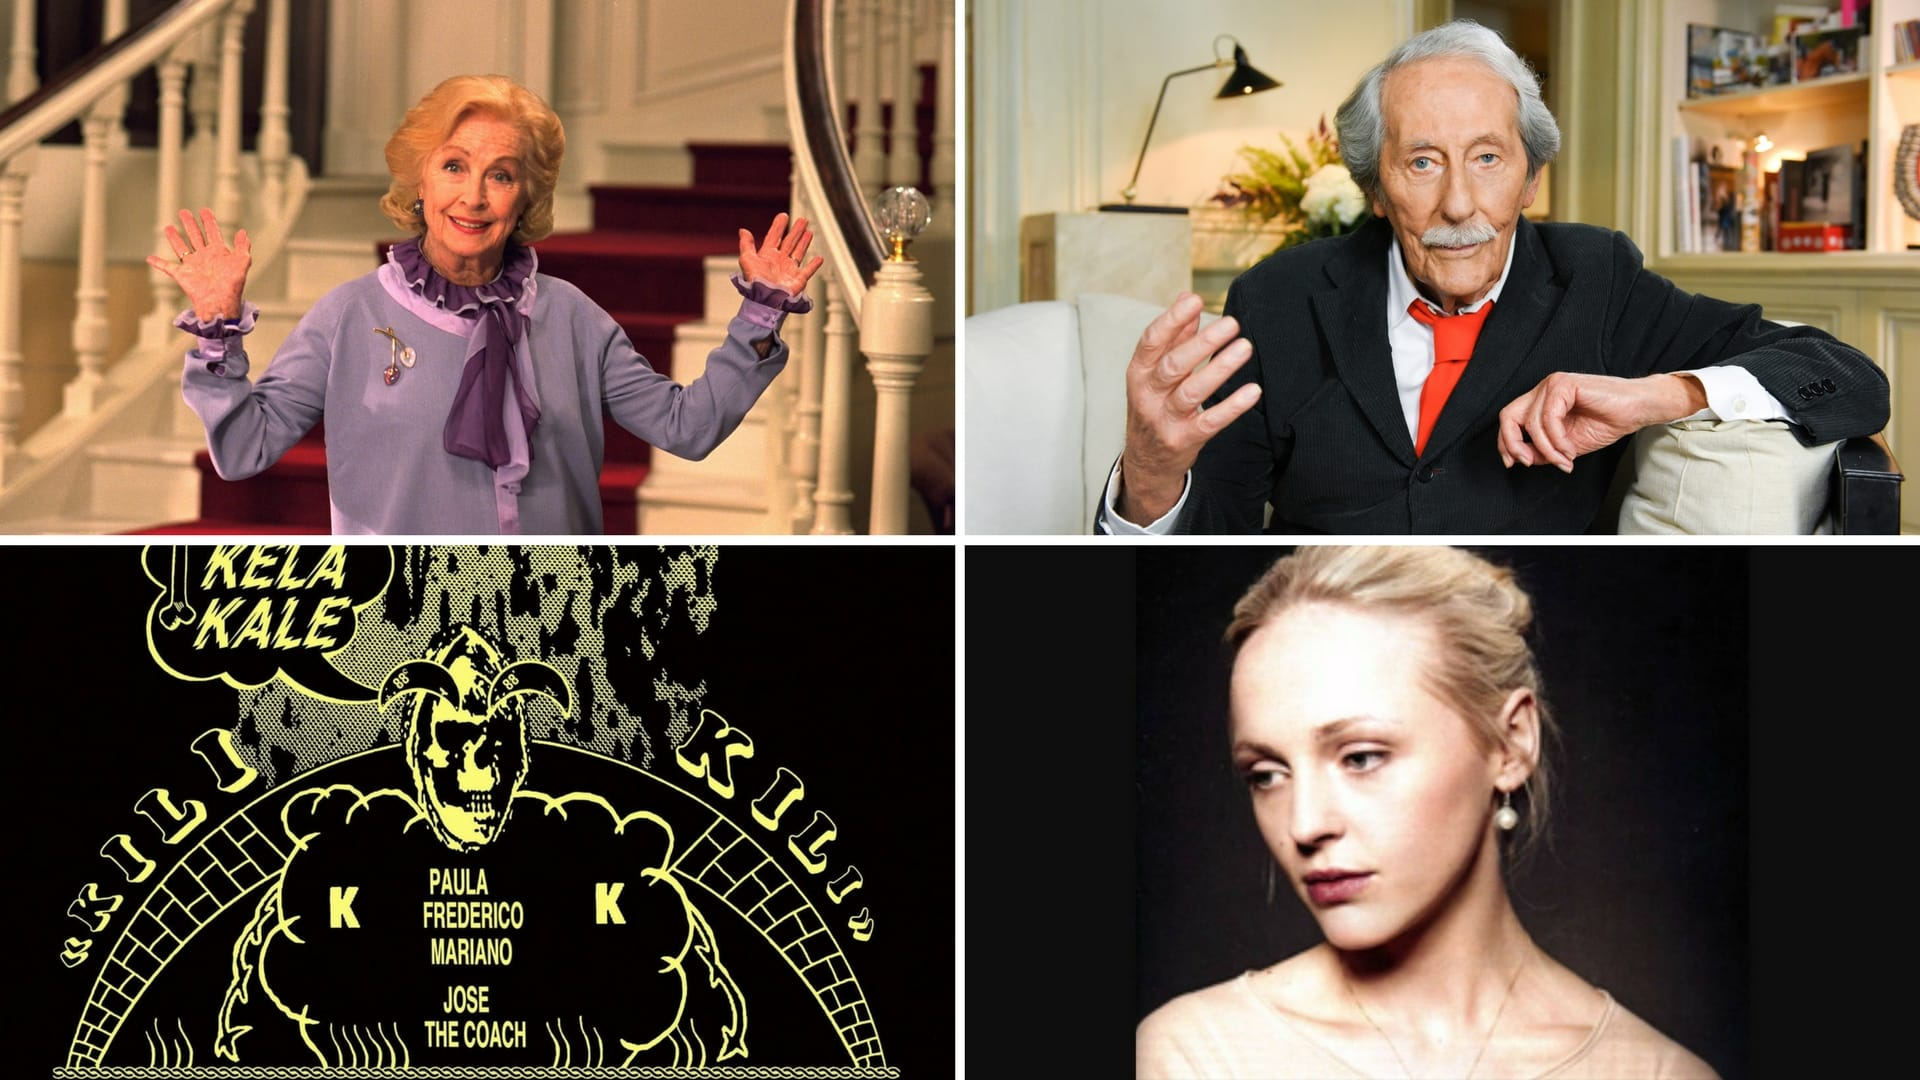 playlist musique 07 images Danielle Darrieux, Jean Rochefort, Black Bones, Laura Marling